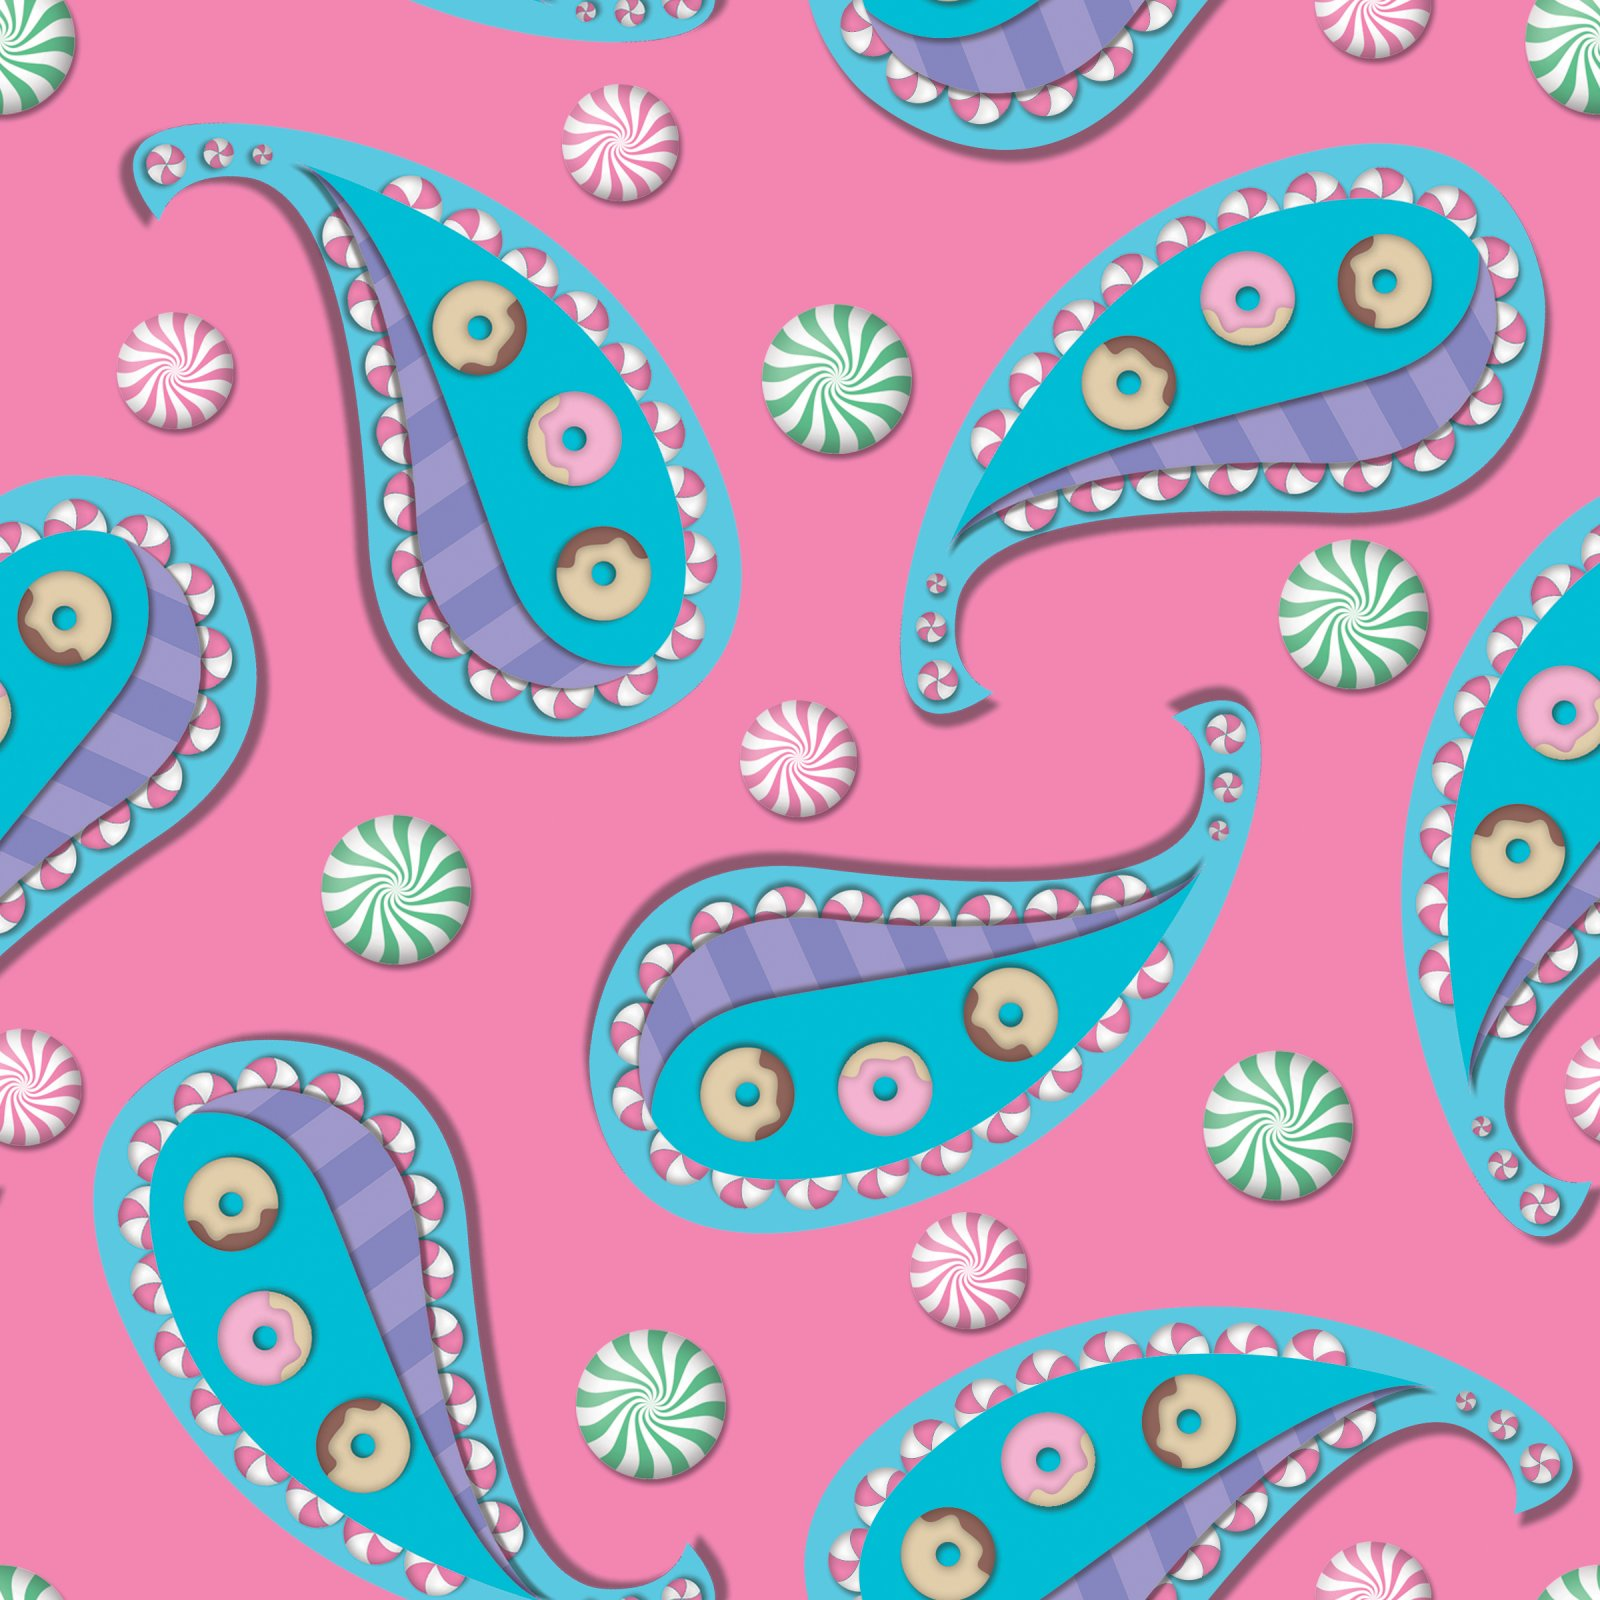 Donut & Candy Paisley - Fabric